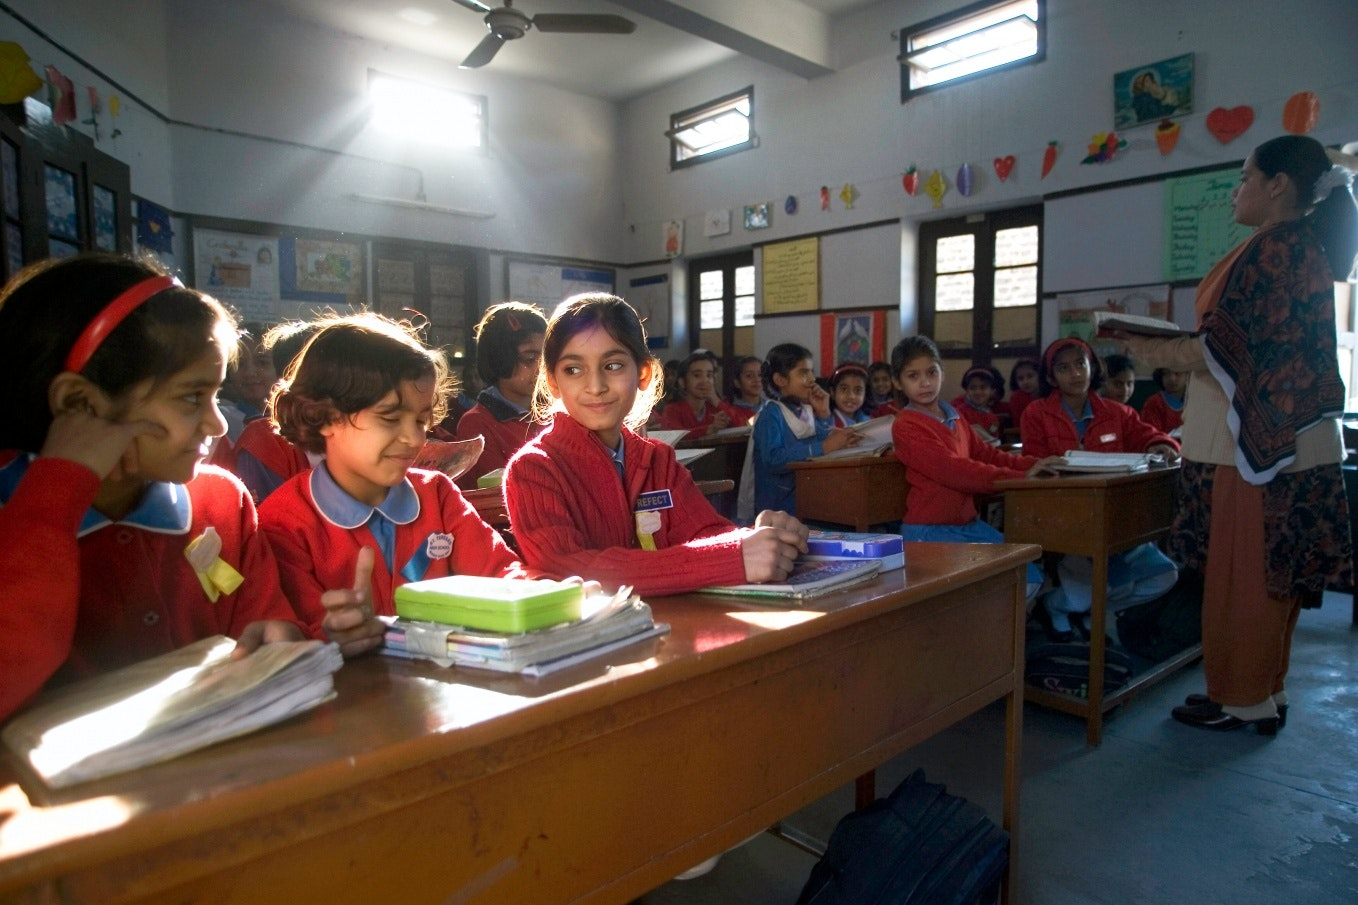 Children seated in a classroom